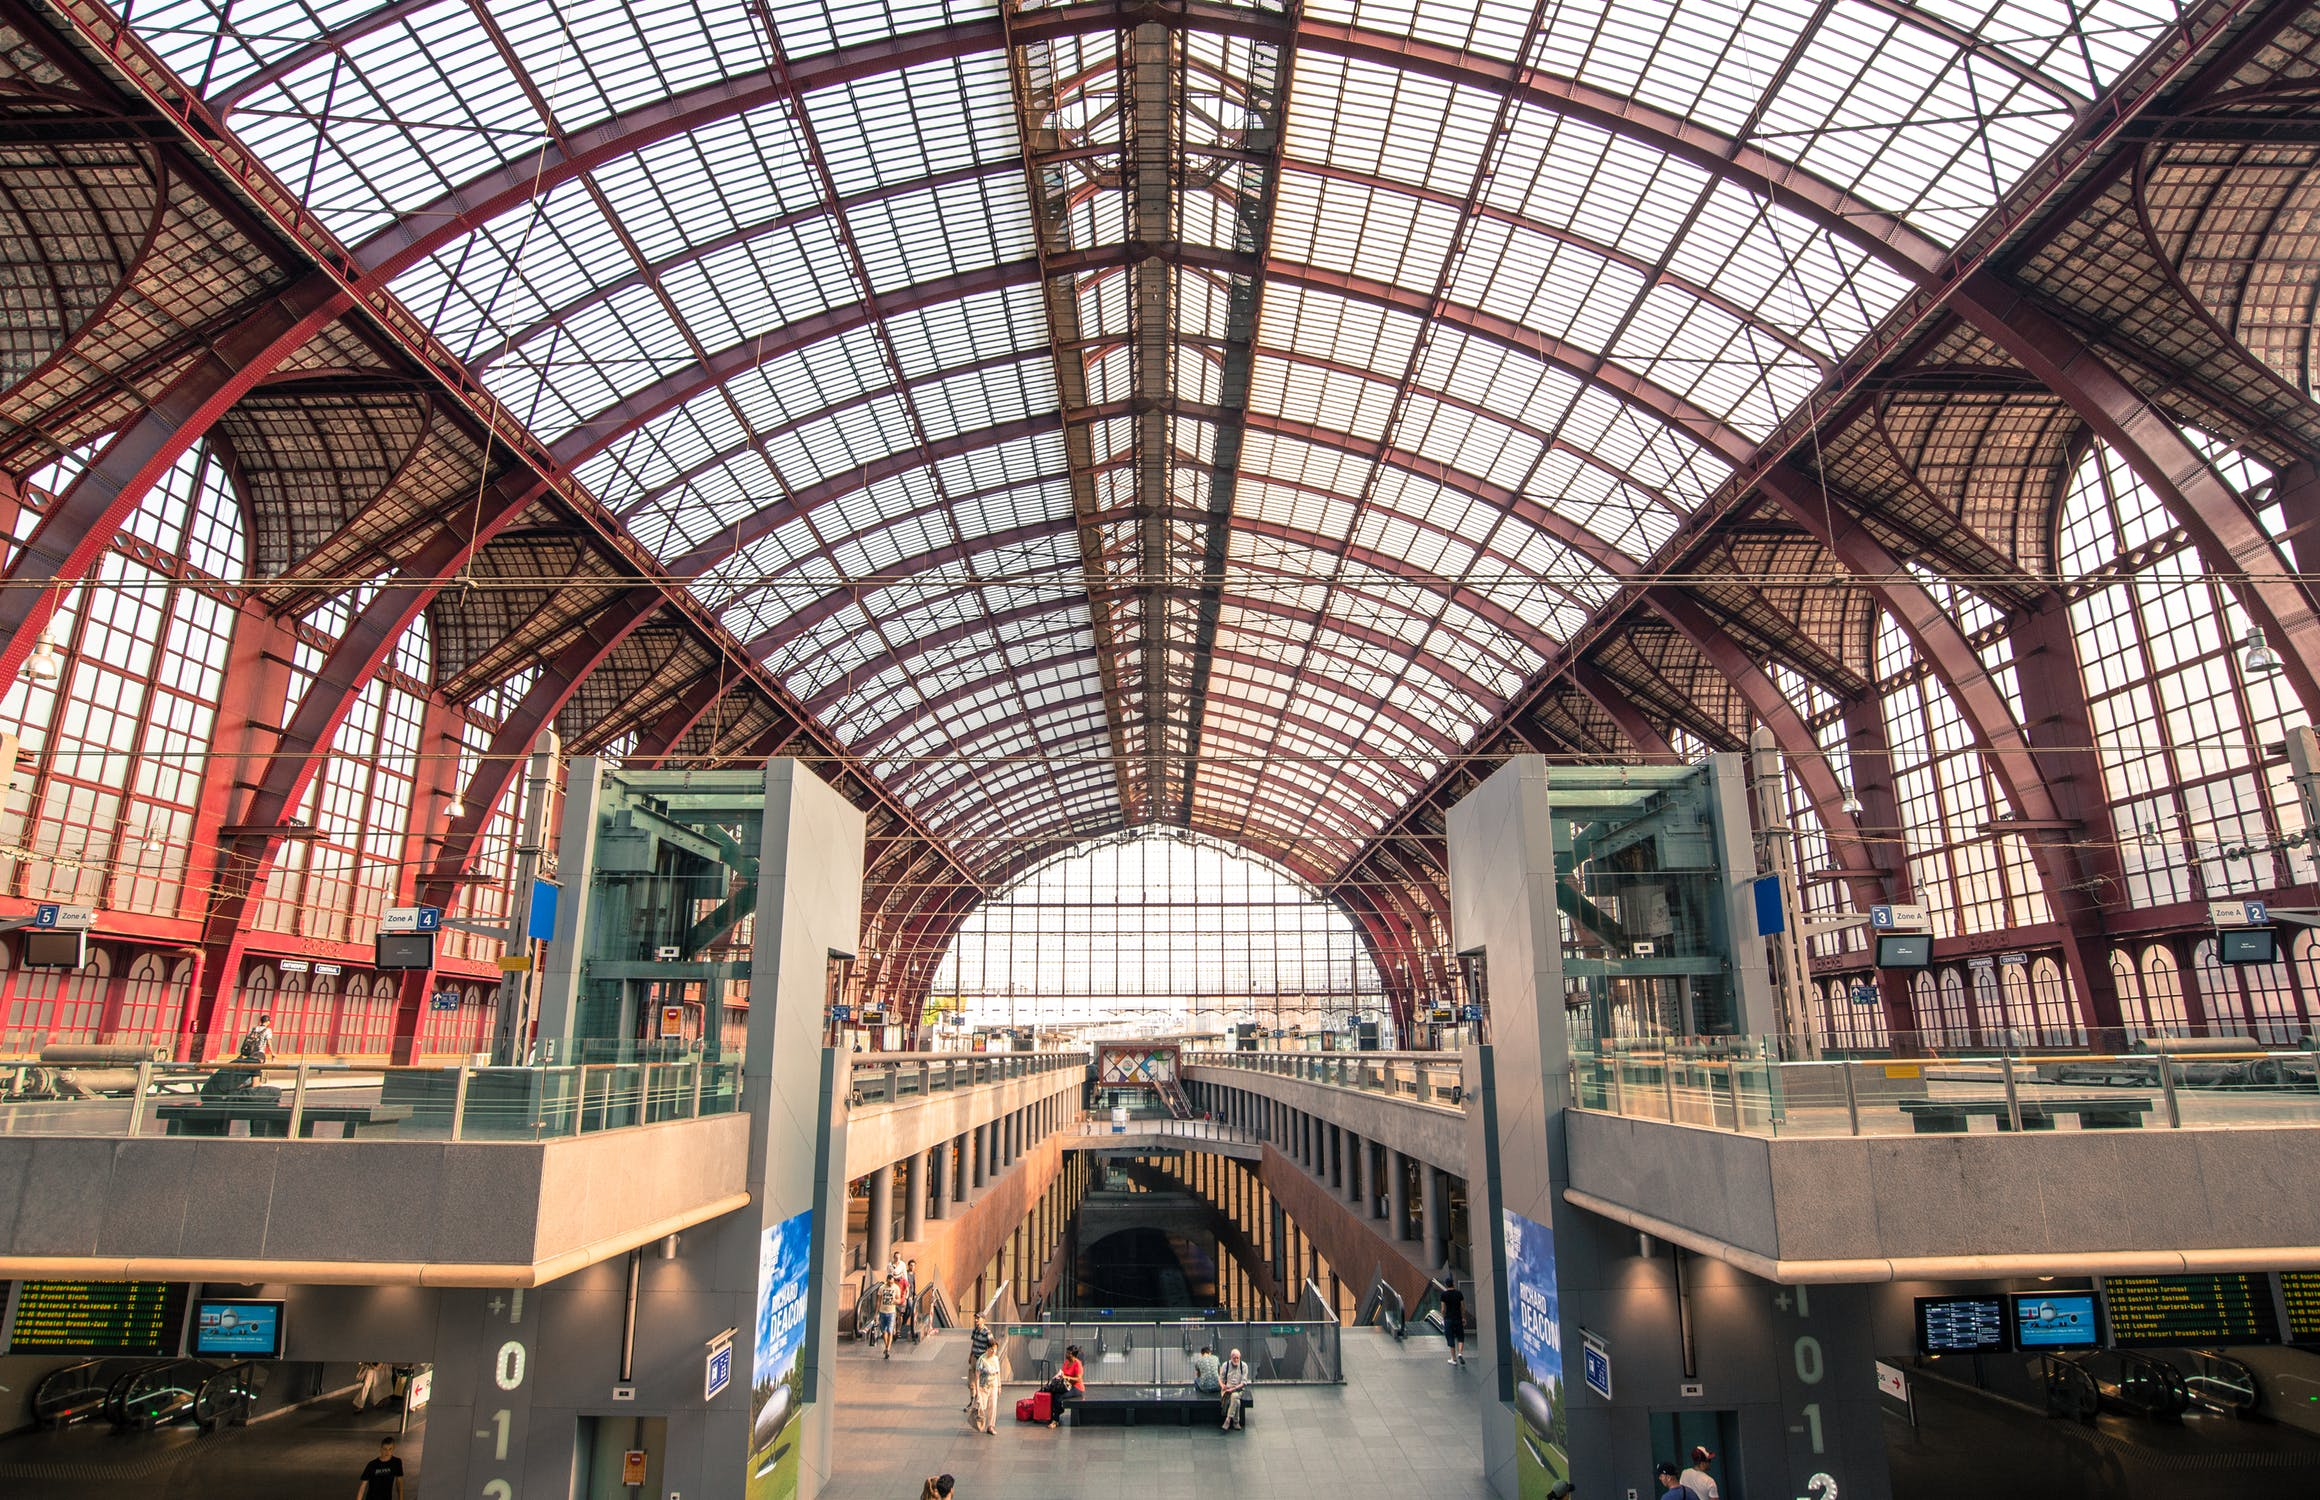 antwerp-station-central-station-city-722701